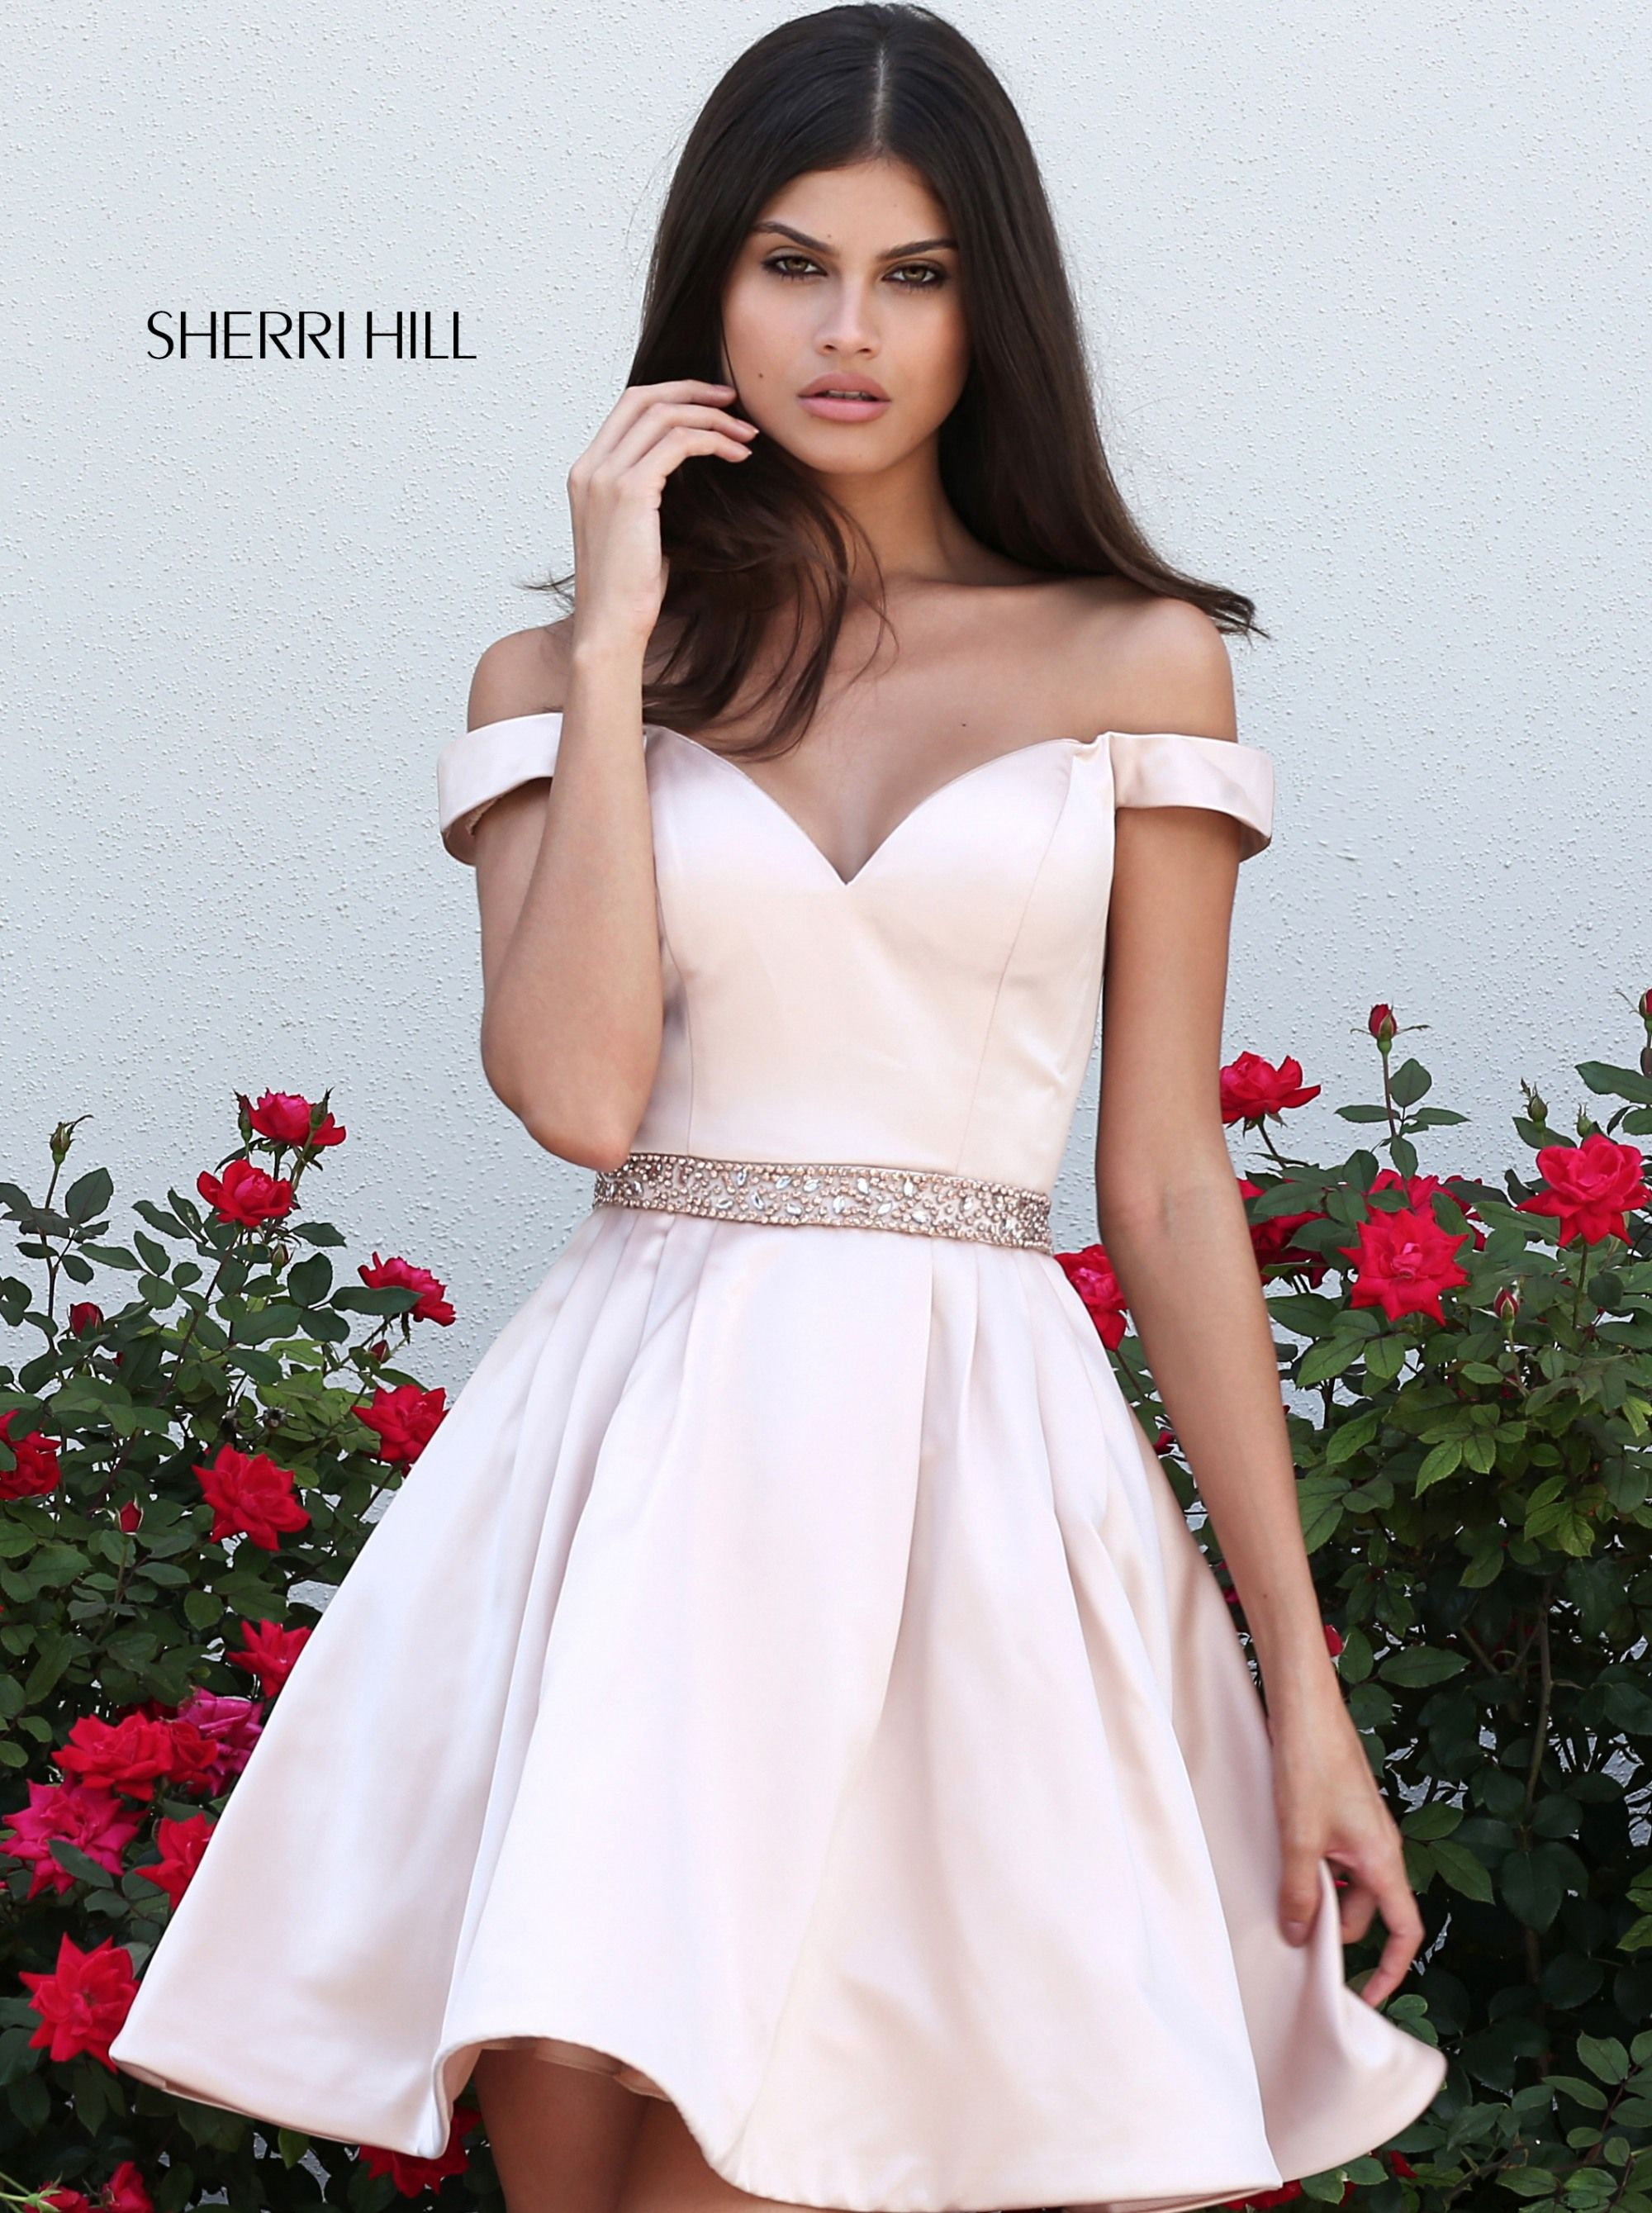 SHERRI HILL 50815 Nude YPSILON DRESSES Short Off the Shoulder Simple Dress  with Beaded Belt prom